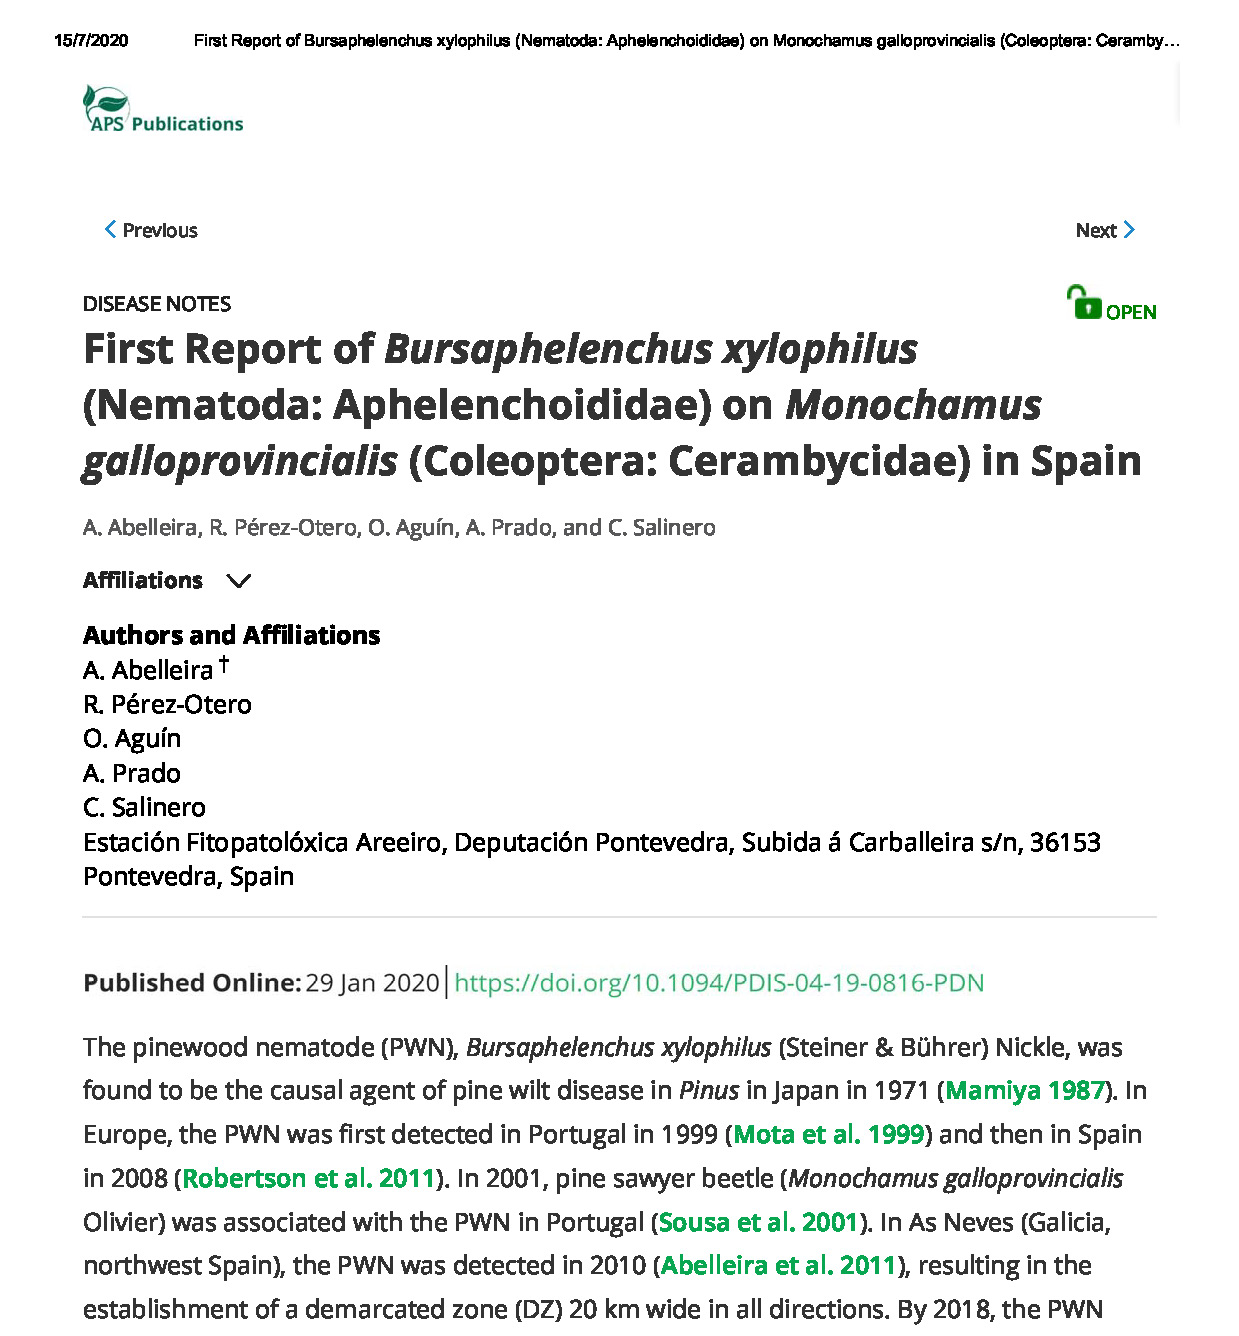 First Report of Bursaphelenchus xylophi